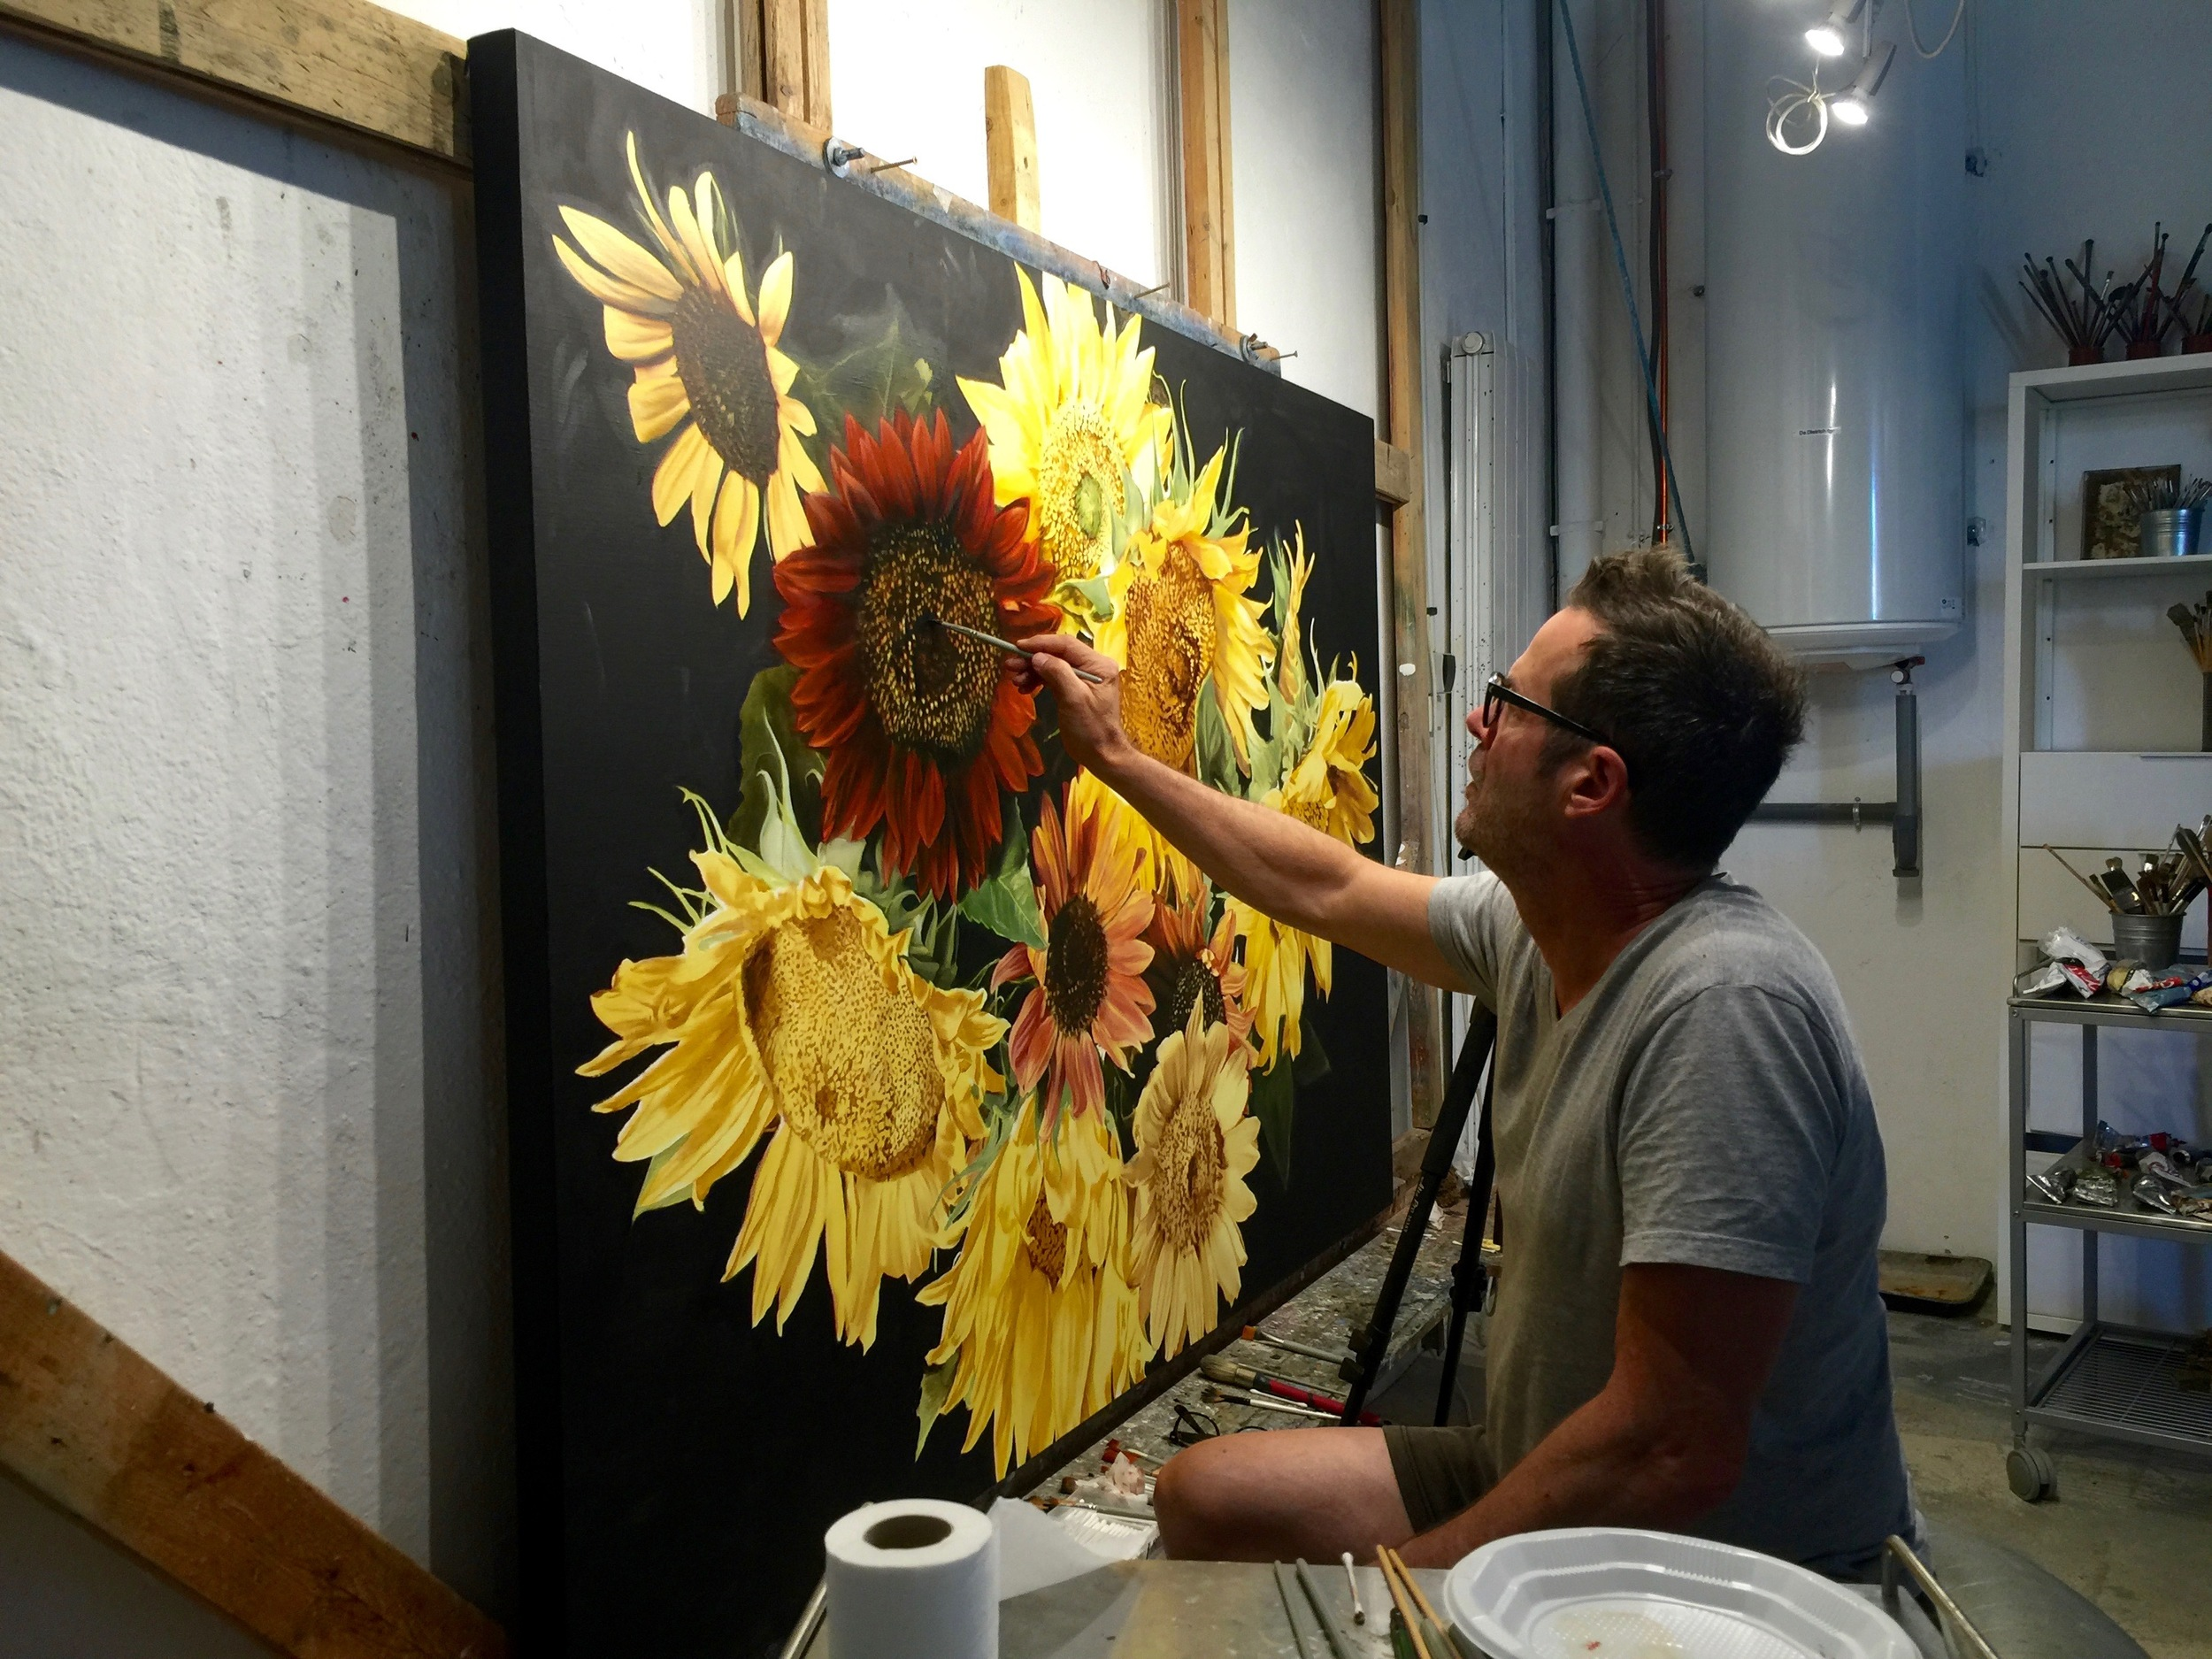 Artist Thomas Darnell at his studio in the south of France